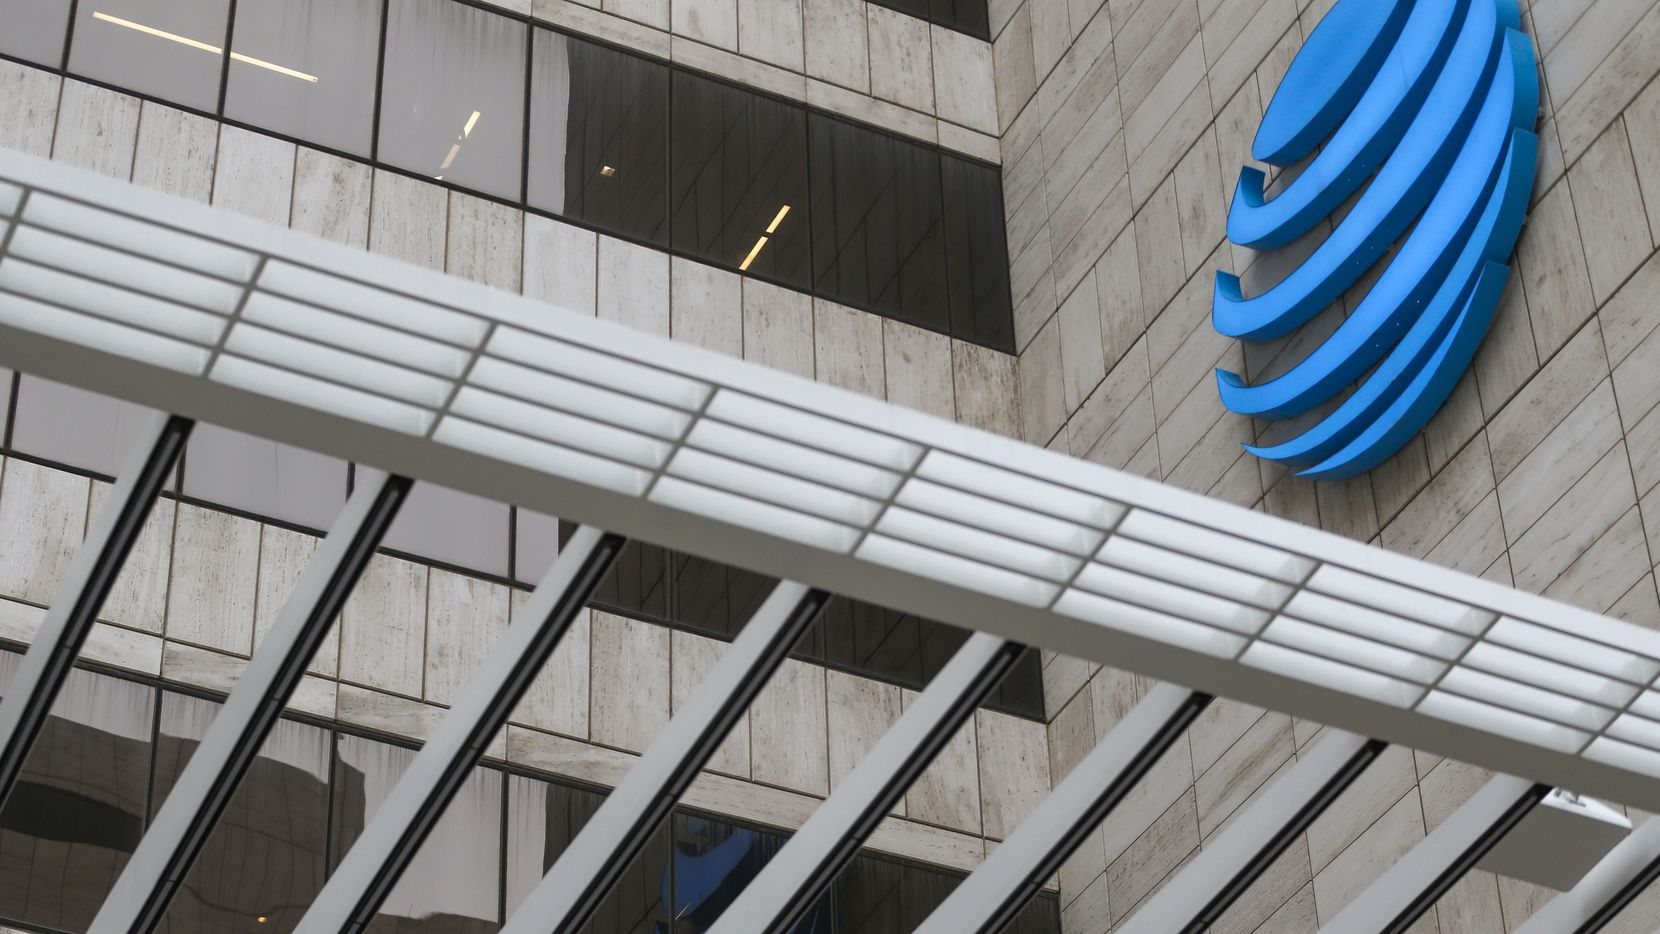 Analysts viewed AT&T's wireless subscriber results as a positive. The Dallas company's largest division added 131,000 prepaid phone customers and 645,000 postpaid phone customers, those who pay a regular monthly bill.